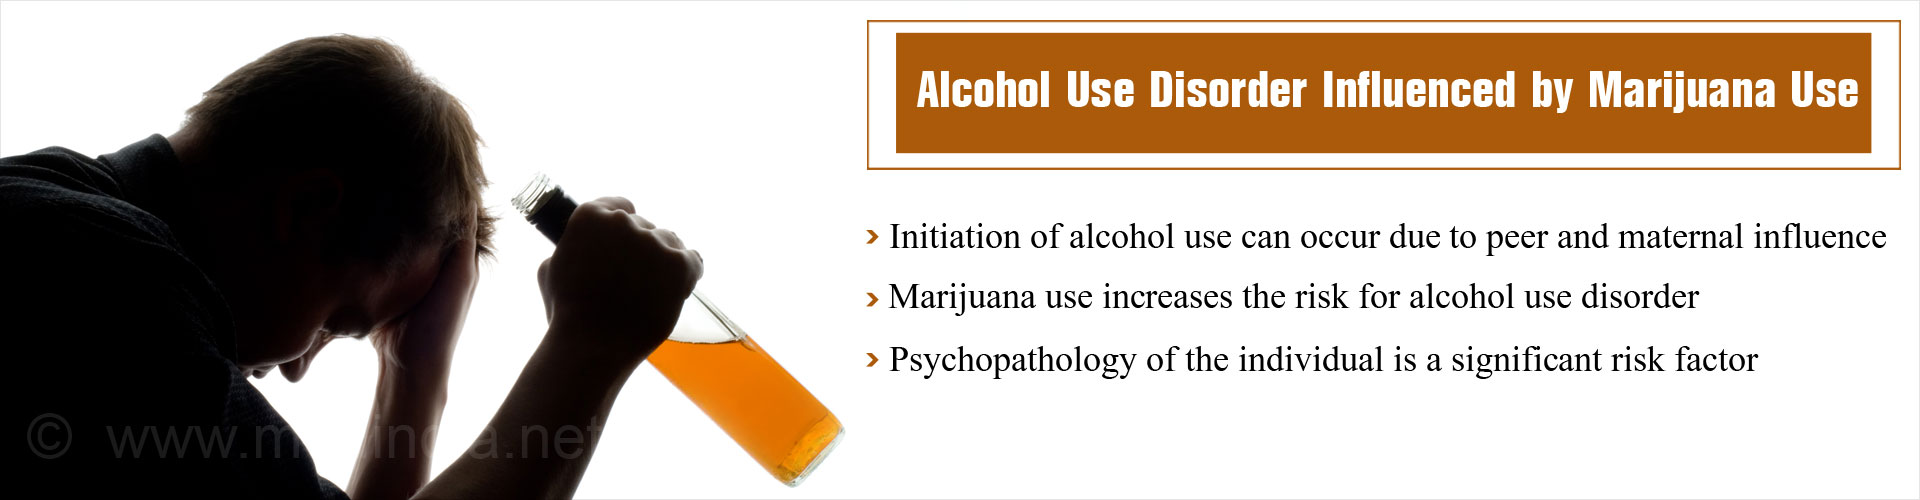 Marijuana Increases Risk for Alcohol Use Disorder